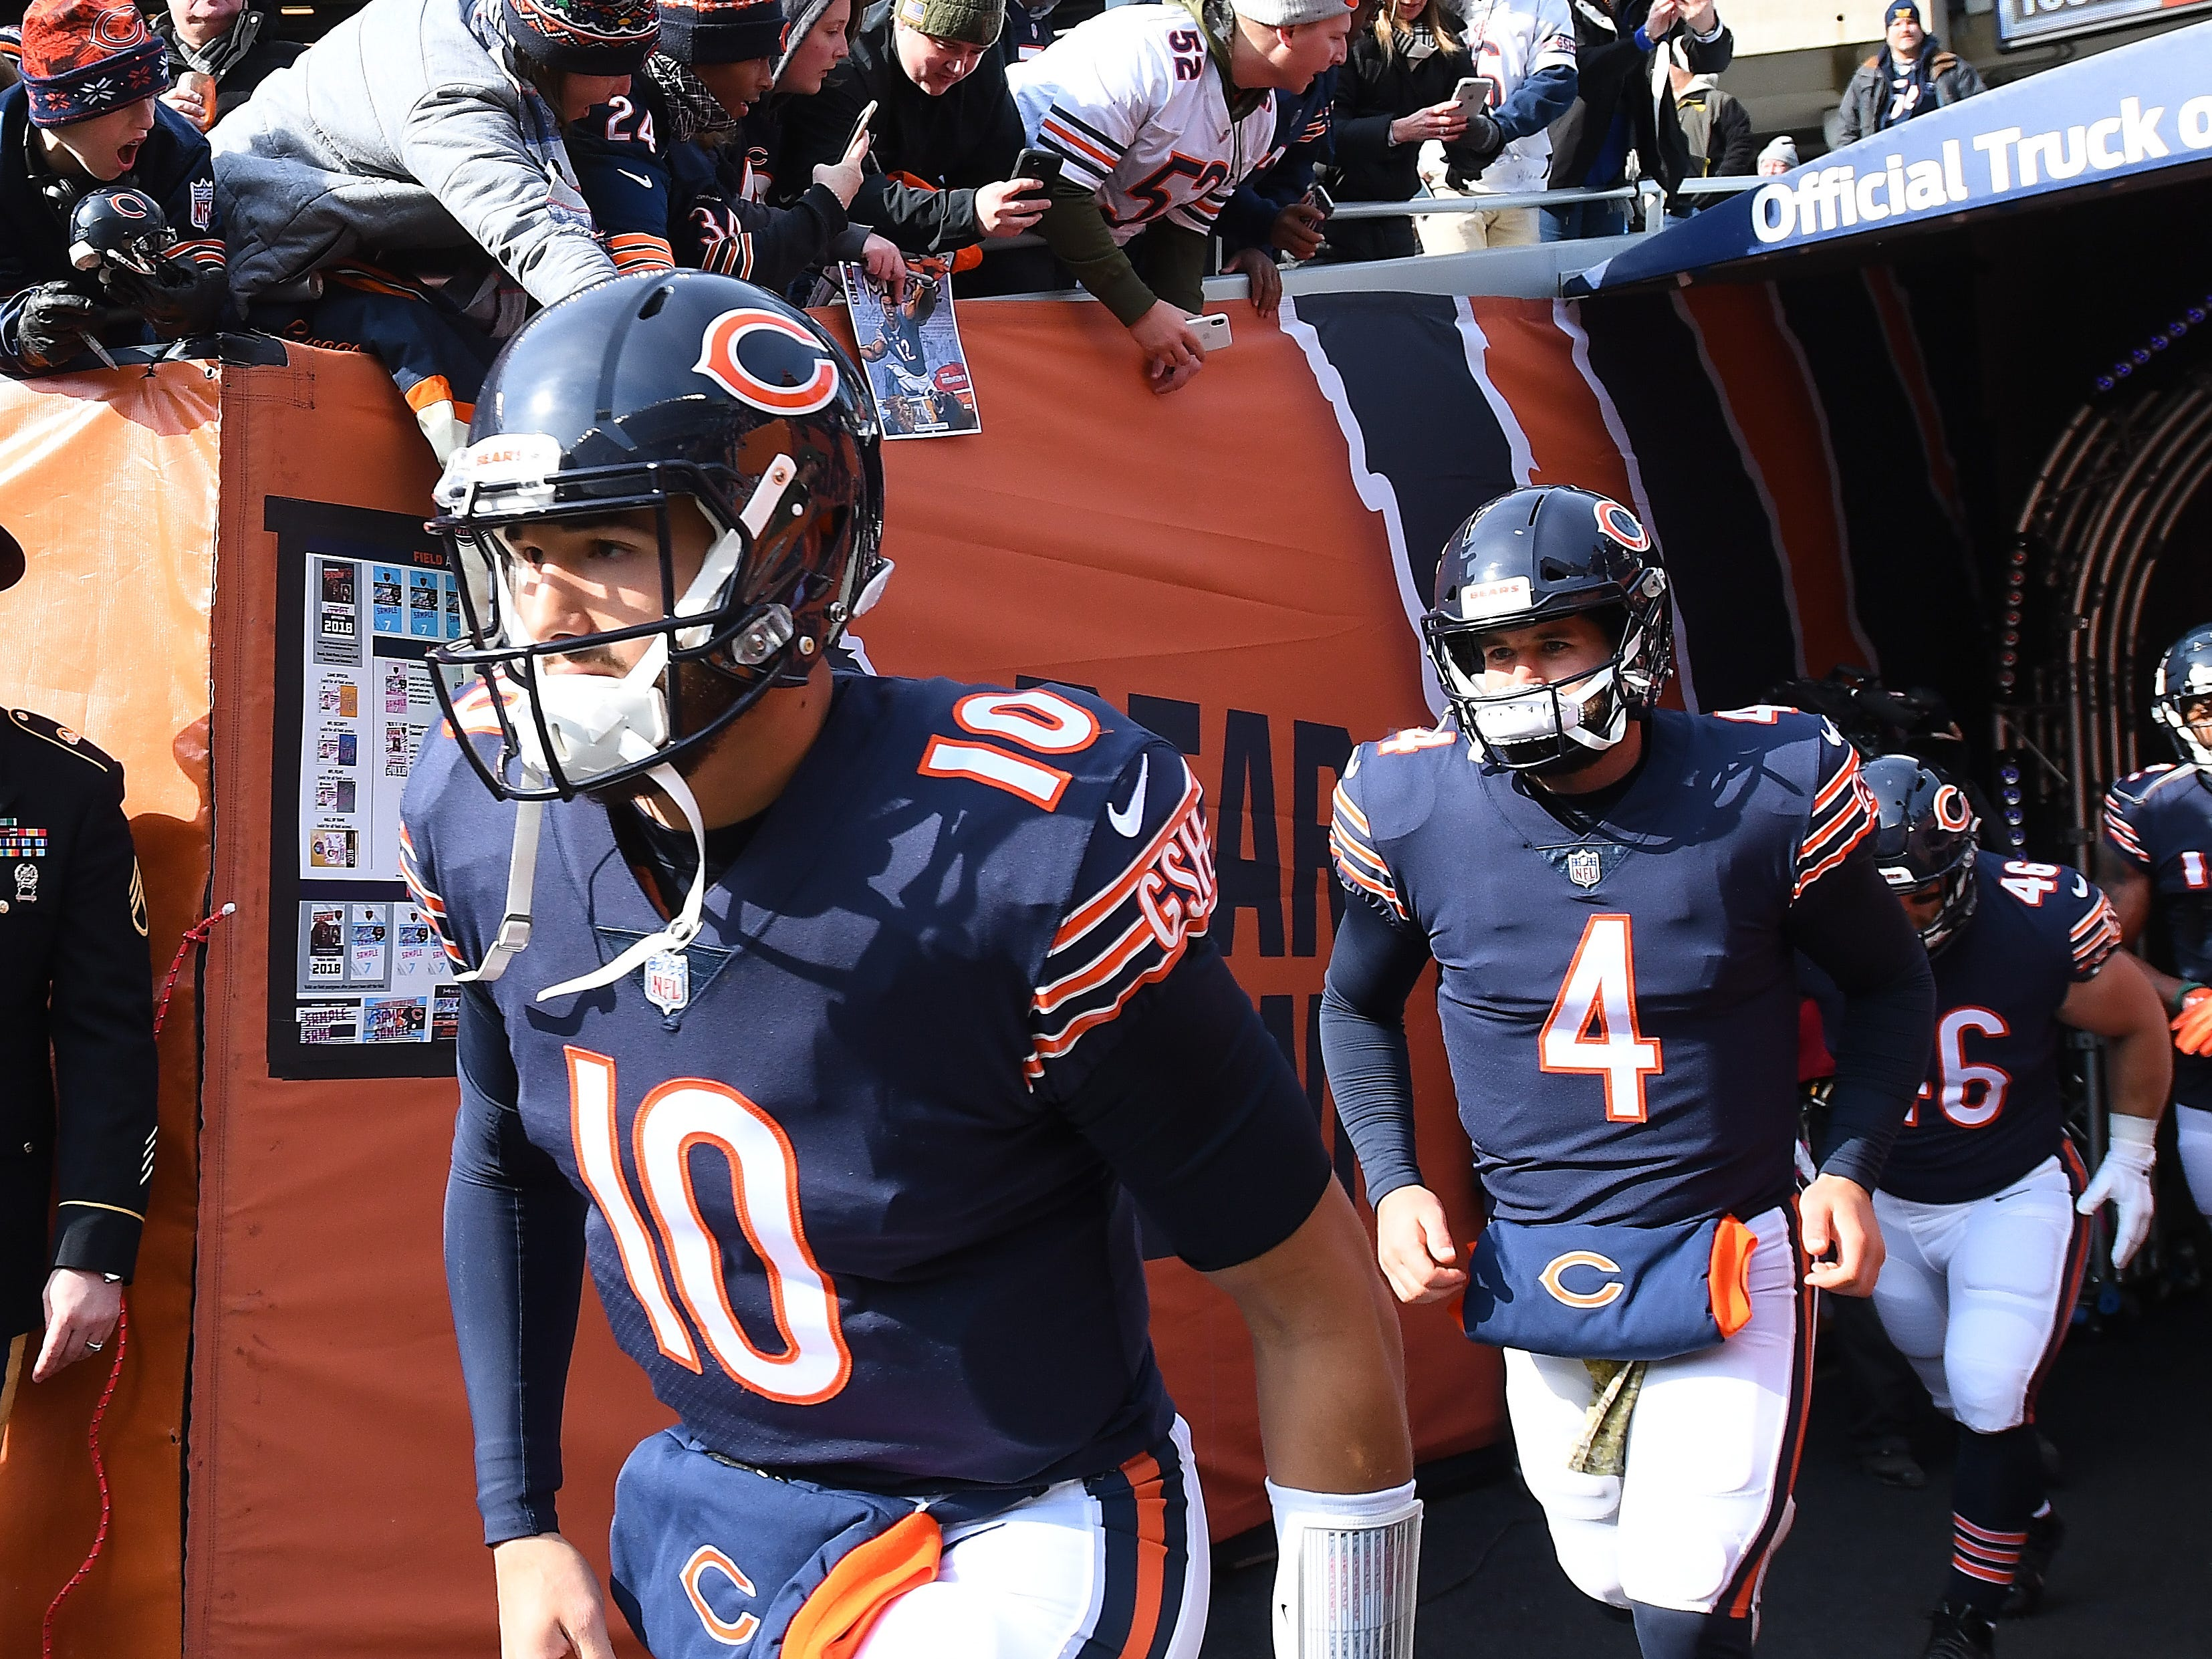 Bears quarterback Mitchell Trubisky leads the team out onto the field before taking on the Detroit Lions at Soldier Field in the fist quarter.